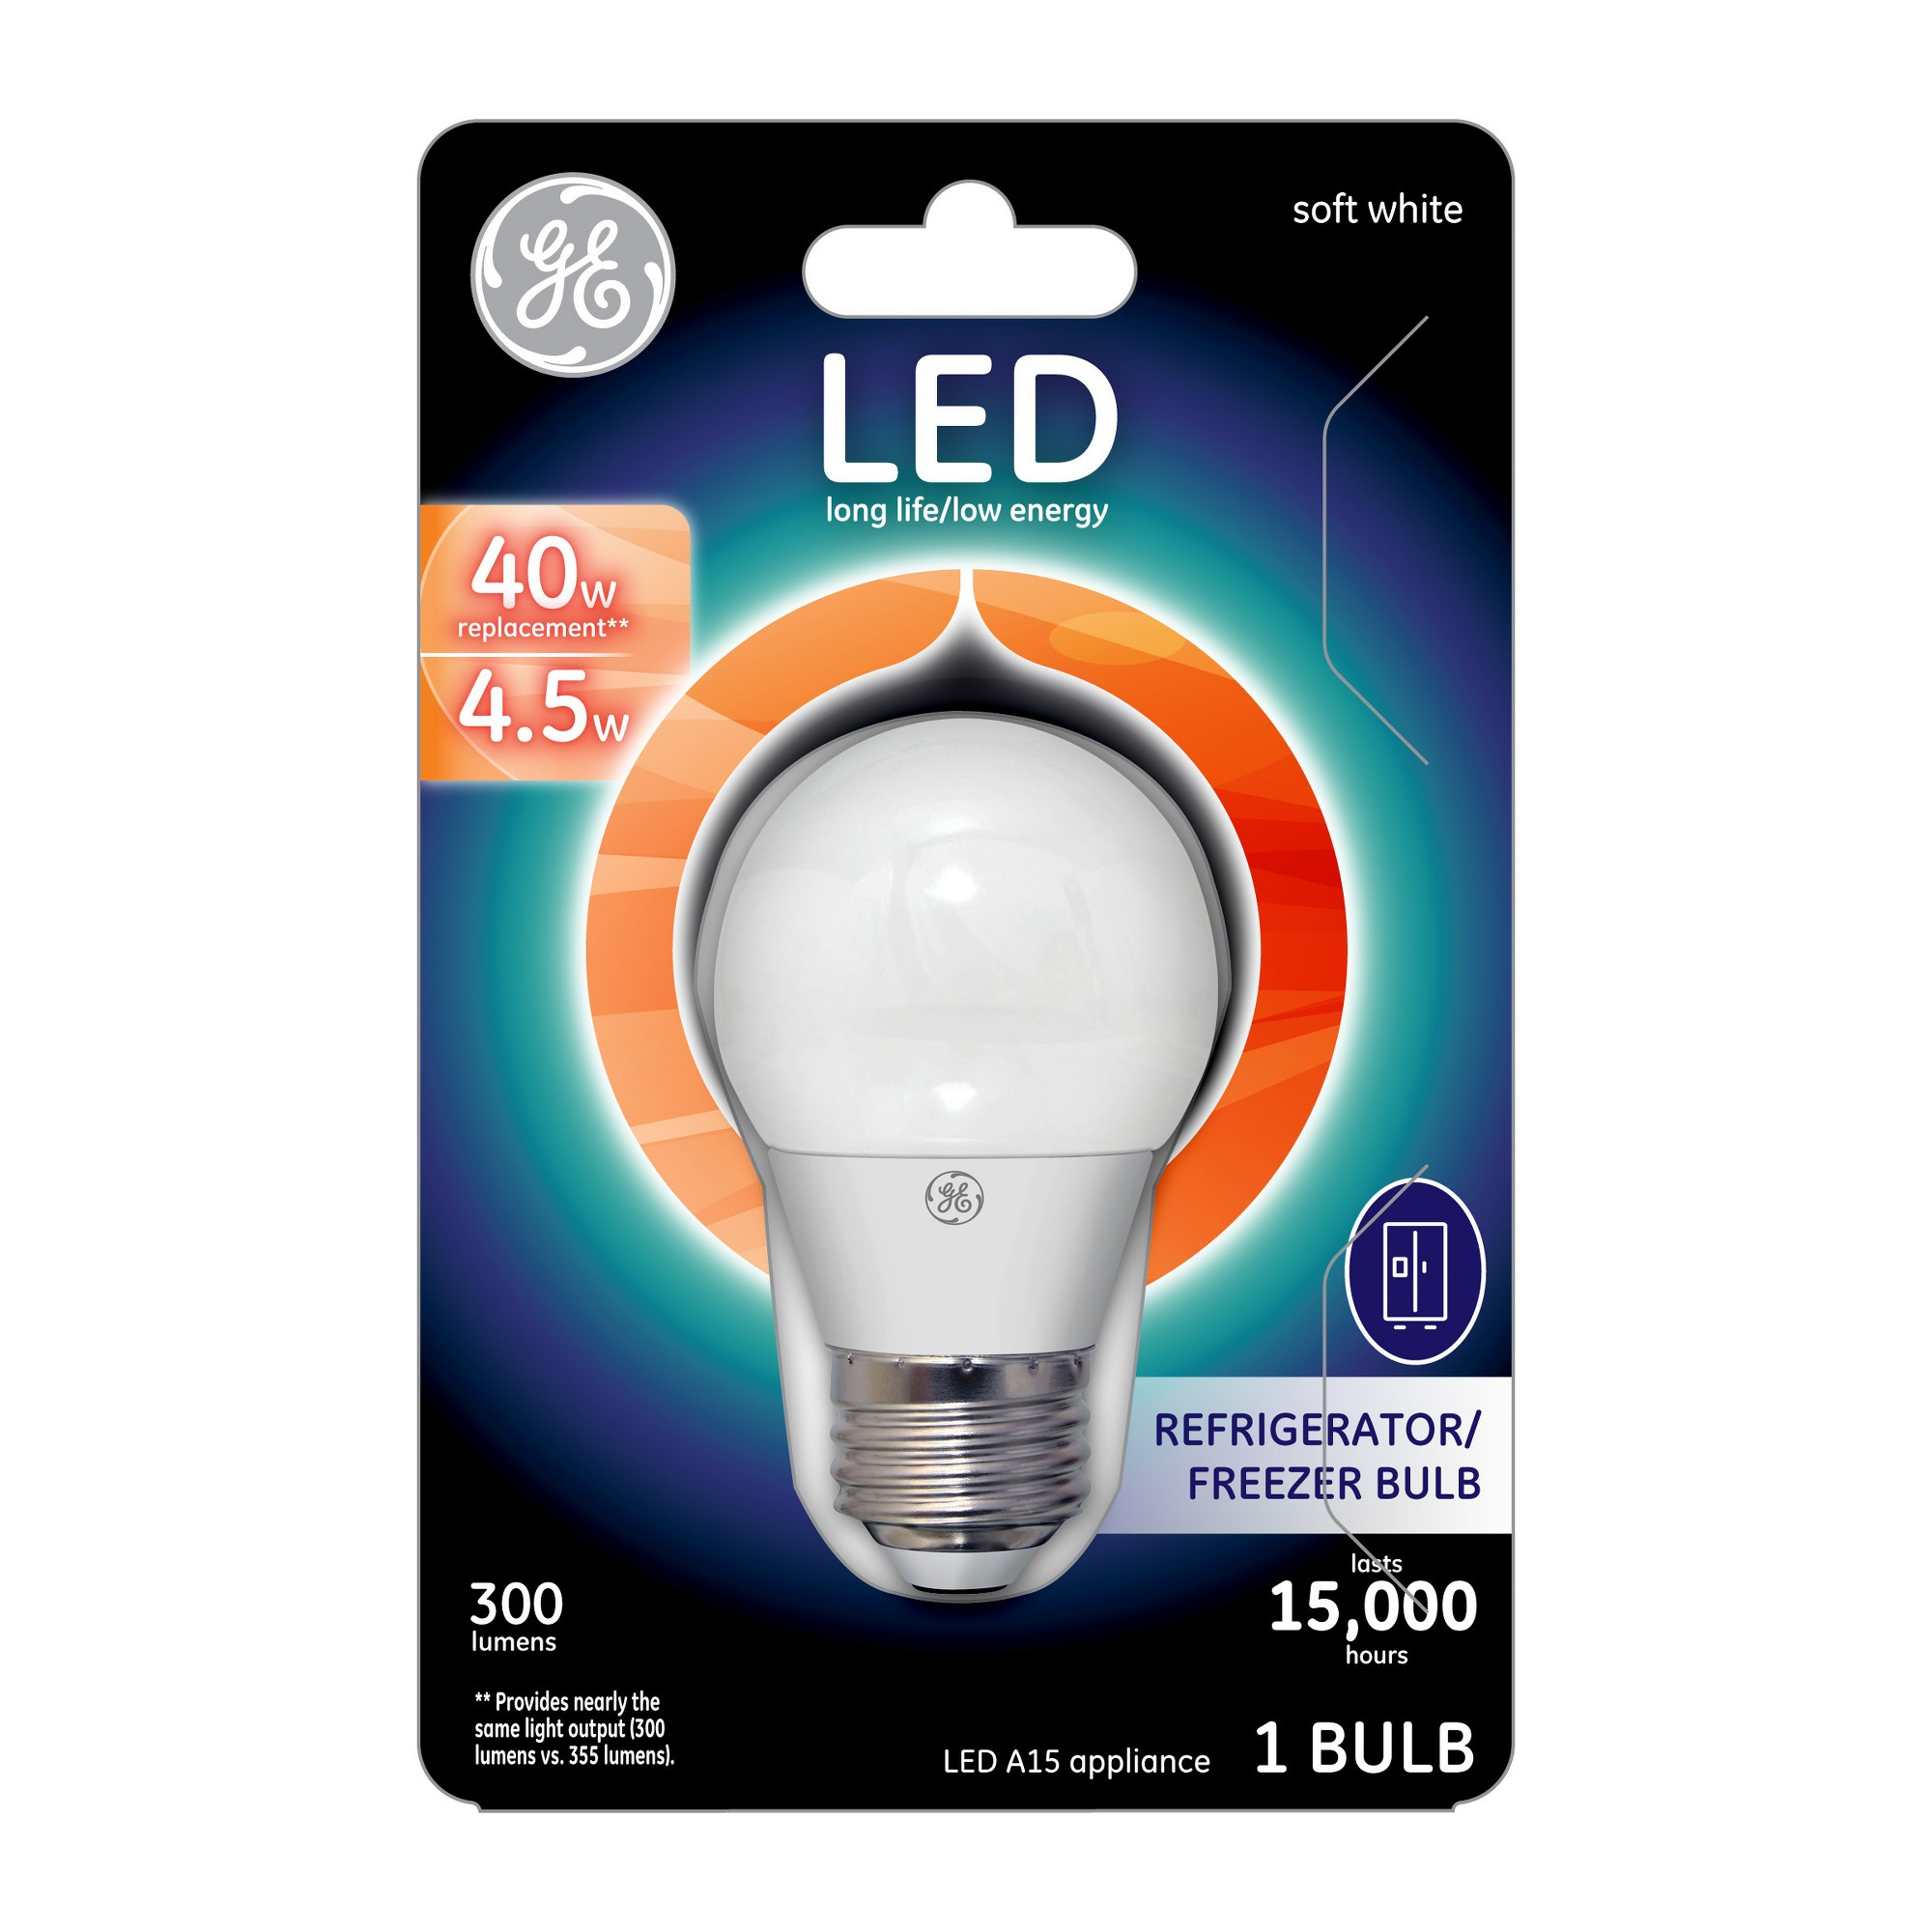 General Electric Led 40w Soft White Ge Led Bulb Led